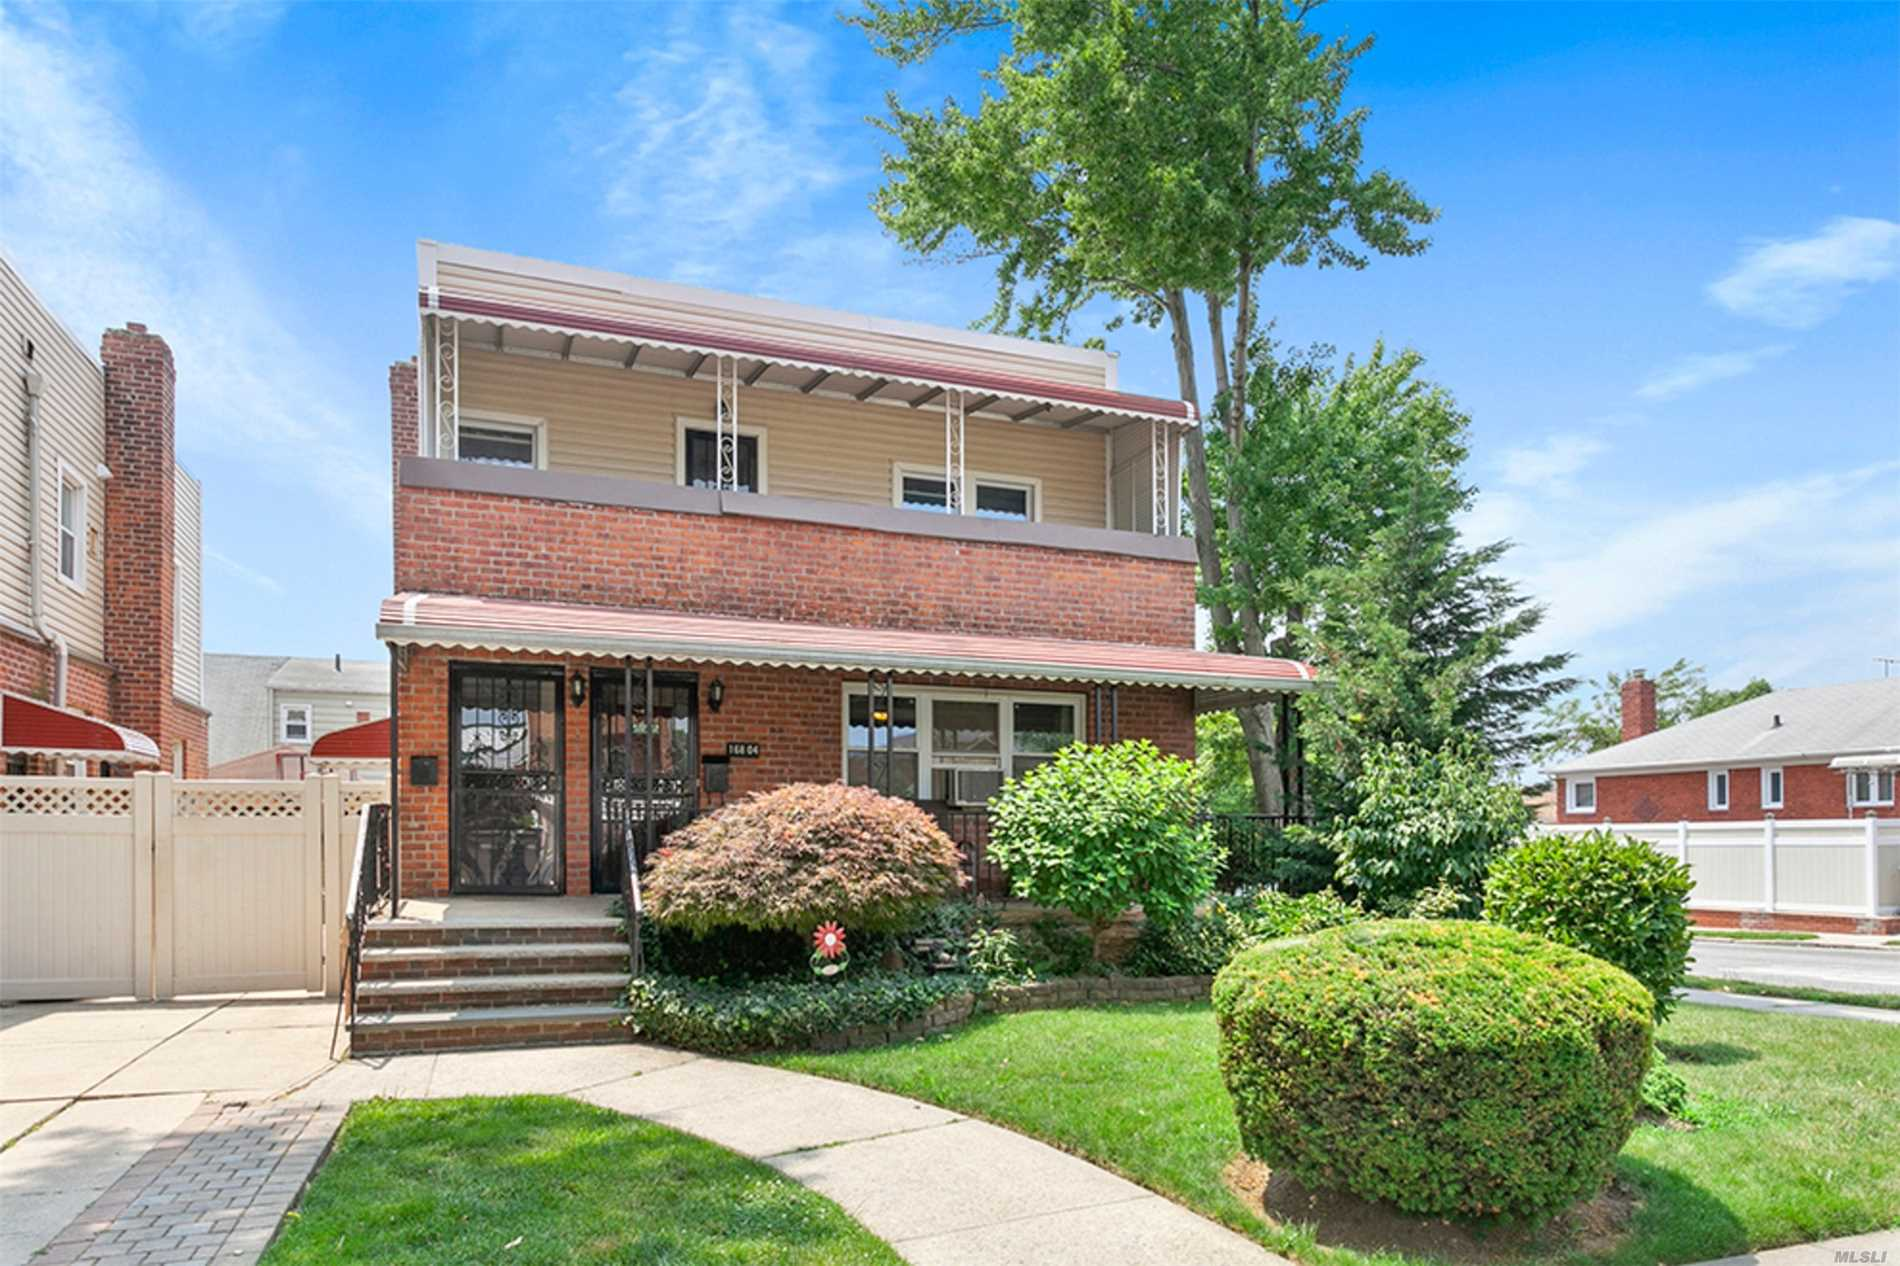 Highly Sought After Corner Block, 2 Residential Home In The Heart Of Fresh Meadows. This Is An Amazing Opportunity For The Savvy Investor. First Unit Features Hardwood Floors, Has Ample Space For A Living And Dining Room, An Open Kitchen And 2 Bedrooms. The Finished Basement Compliments This Home Beautifully. There Is Ample Space For Recreation, Laundry And Storage. This Great Home Boasts 3 Entrances Including A Separate Rear Entrance To The Basement.  The Second Floor Features A 2 Bedroom